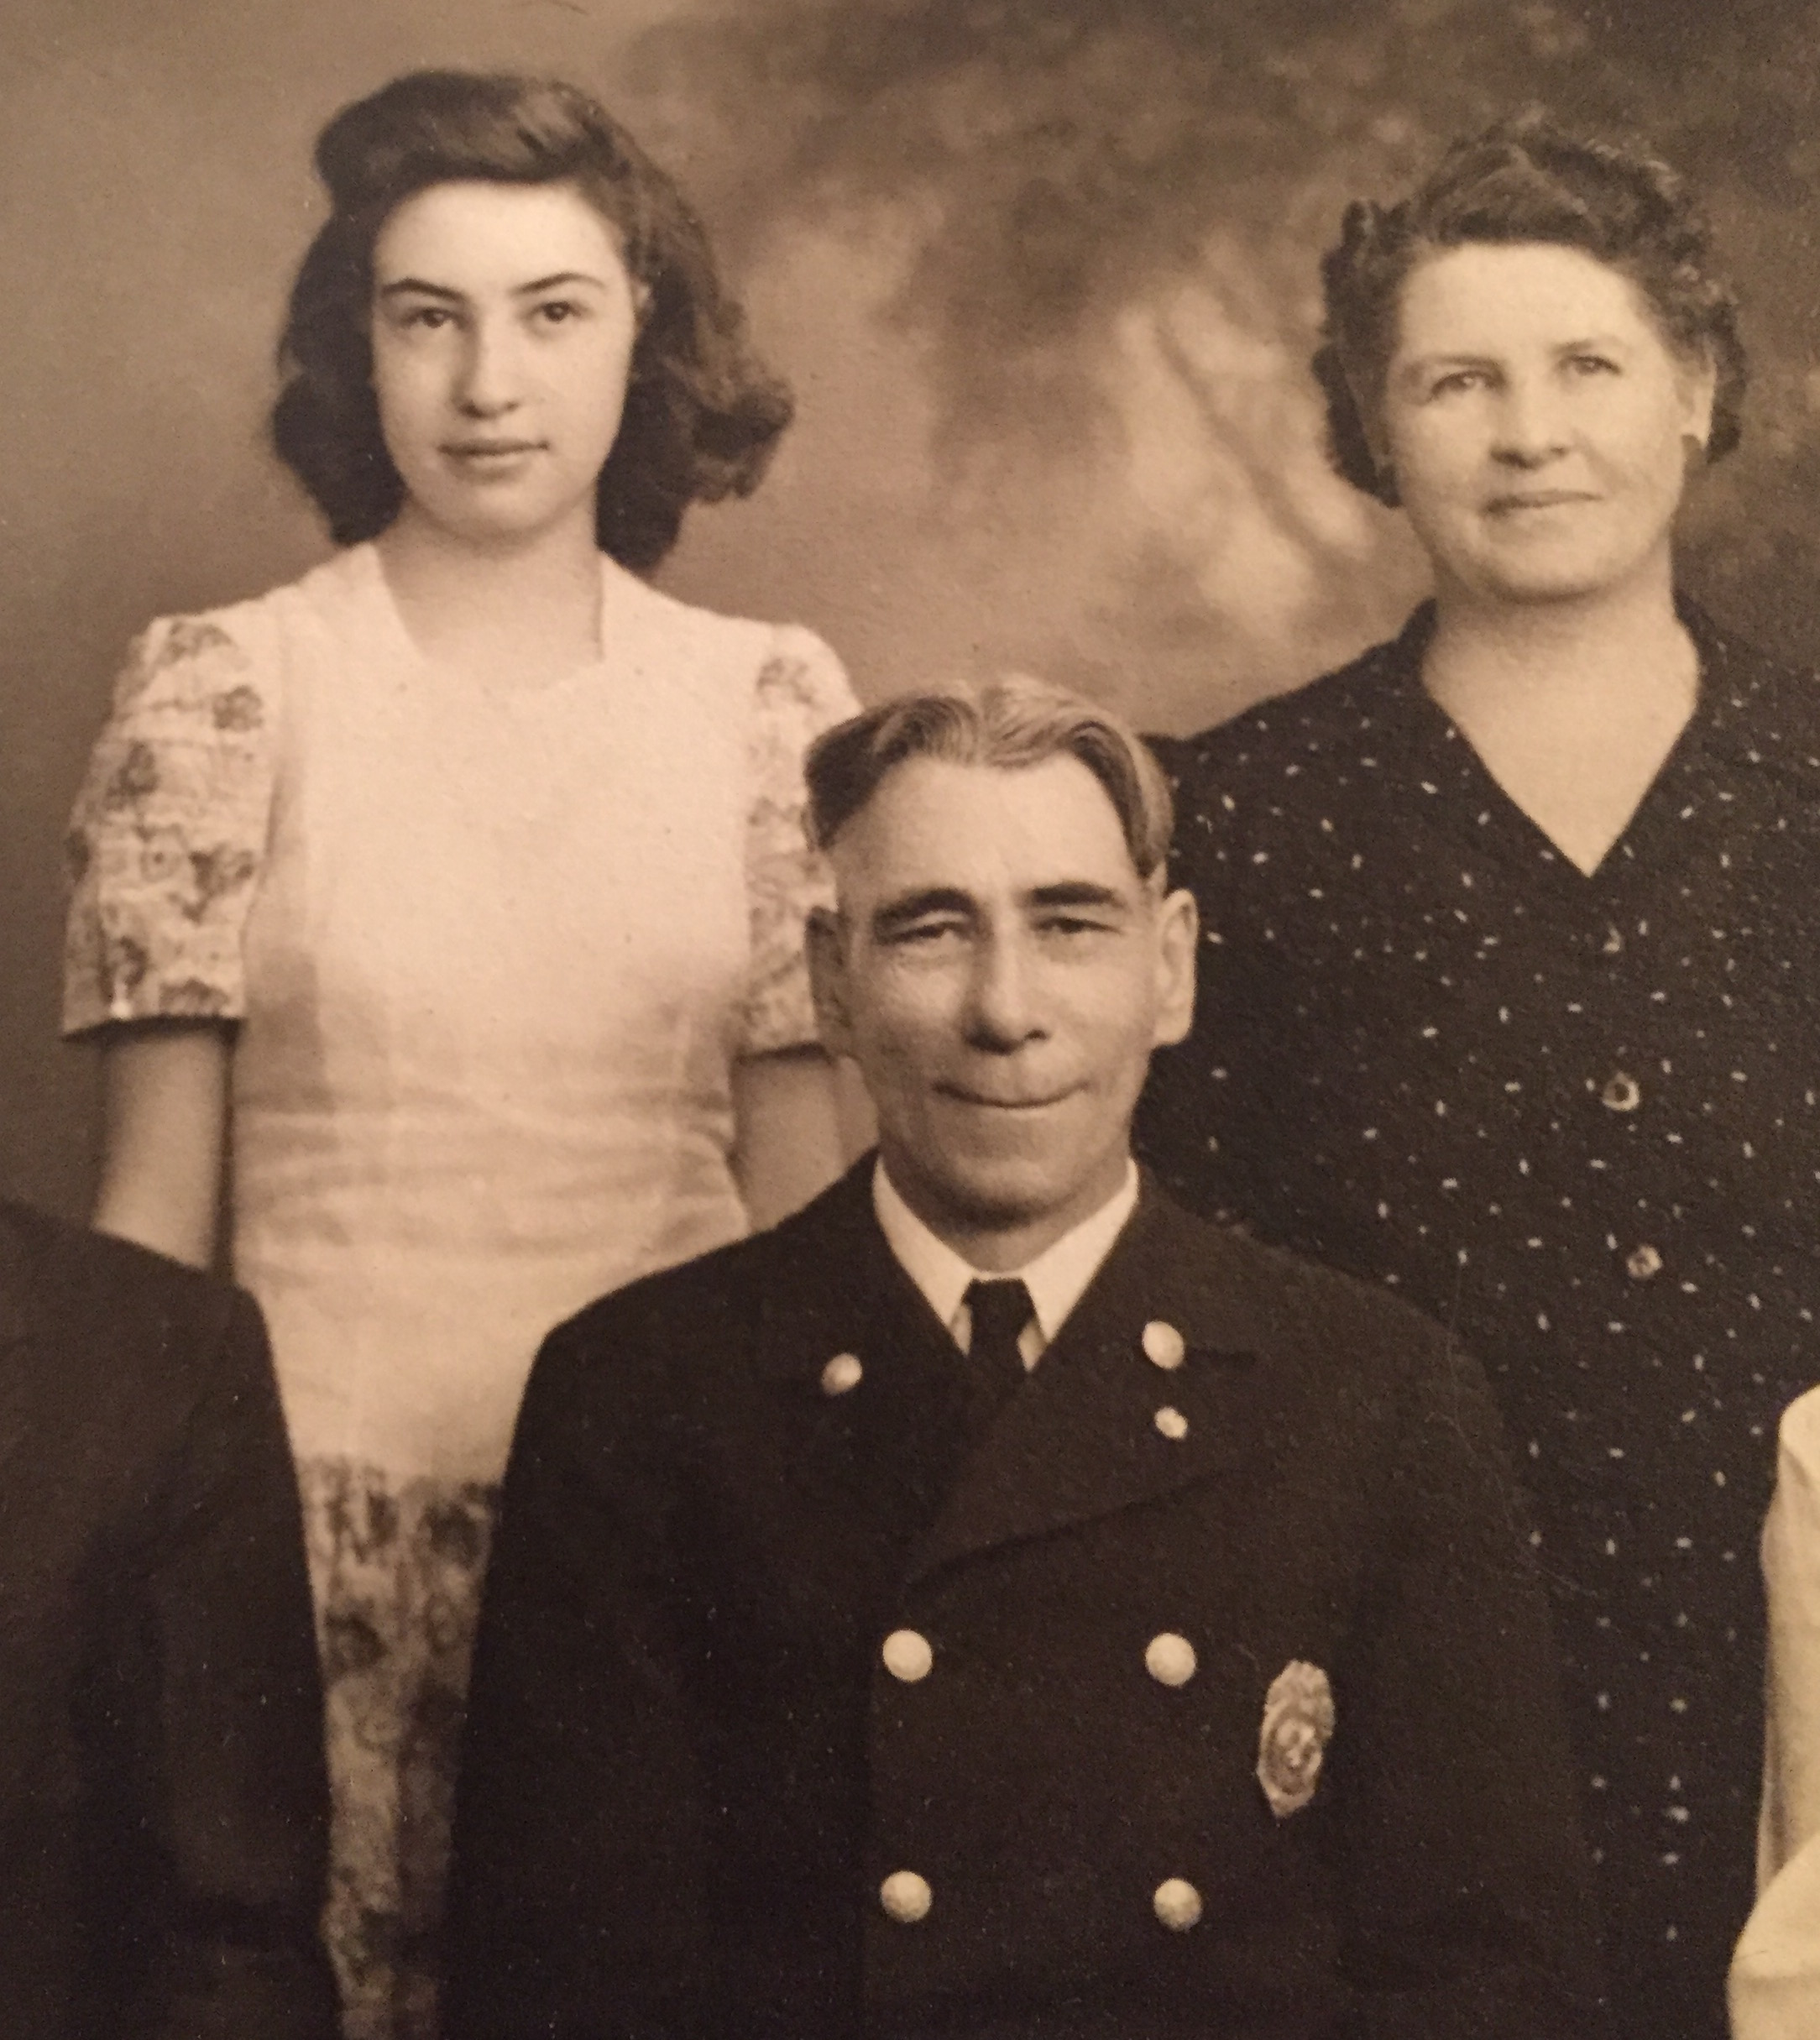 Florence at about age 16, with parents Clyde and May Rose Campbell.